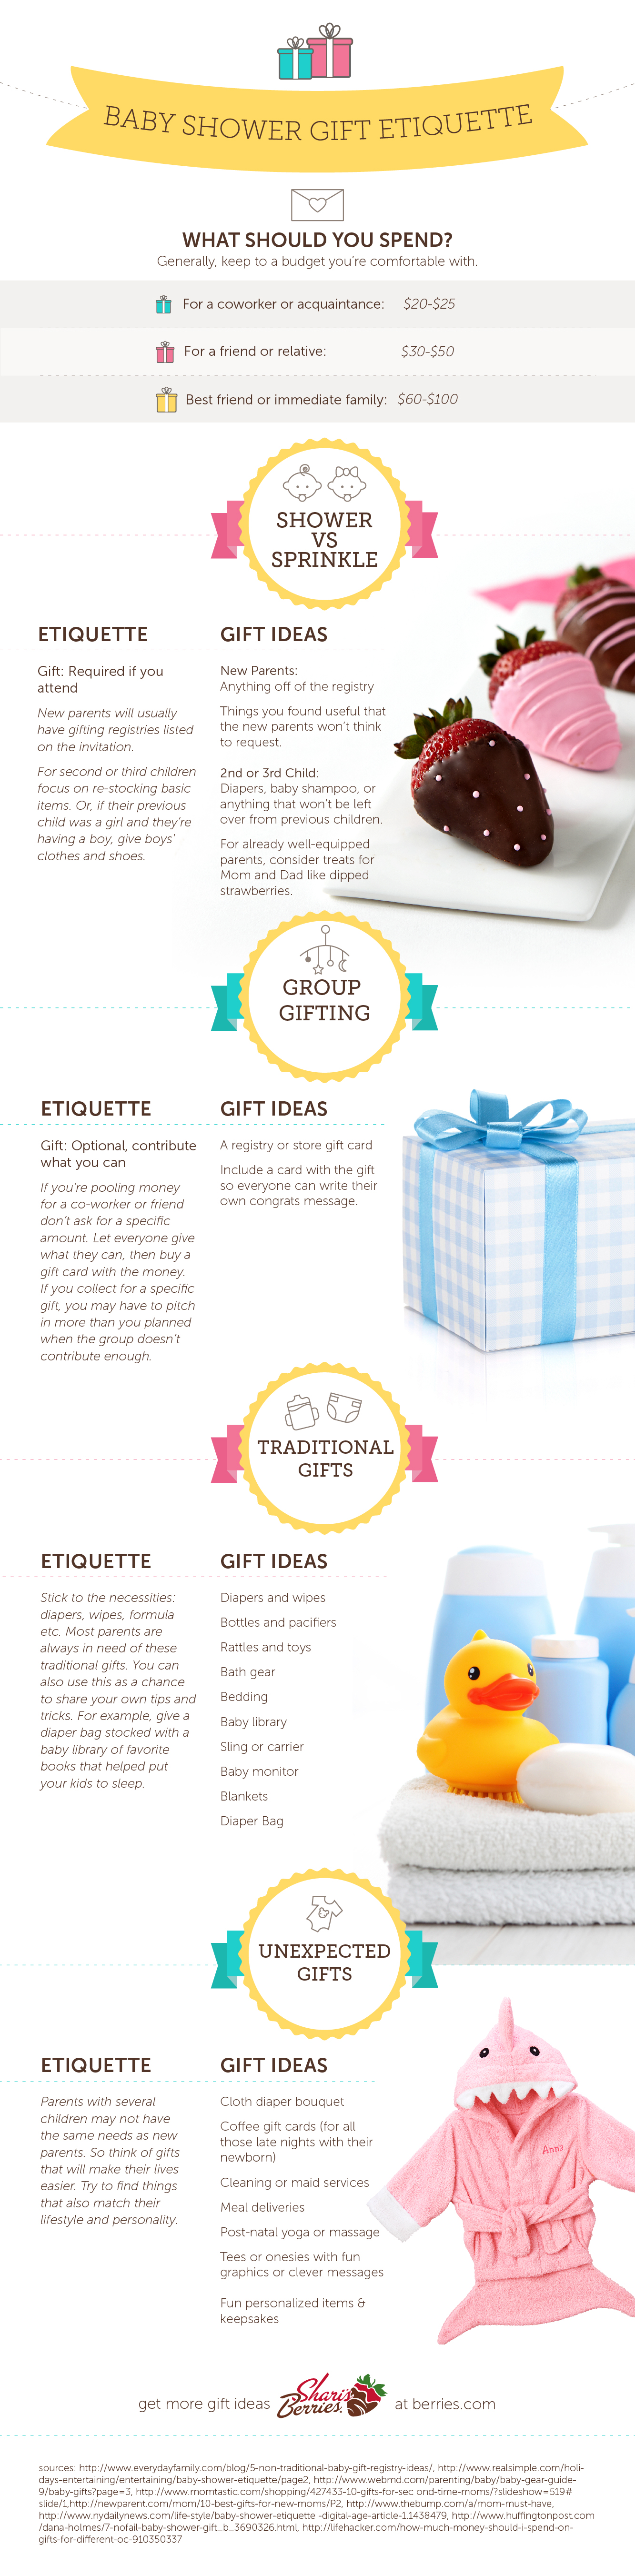 Baby Shower Gift Etiquette Shari s Berries Blog